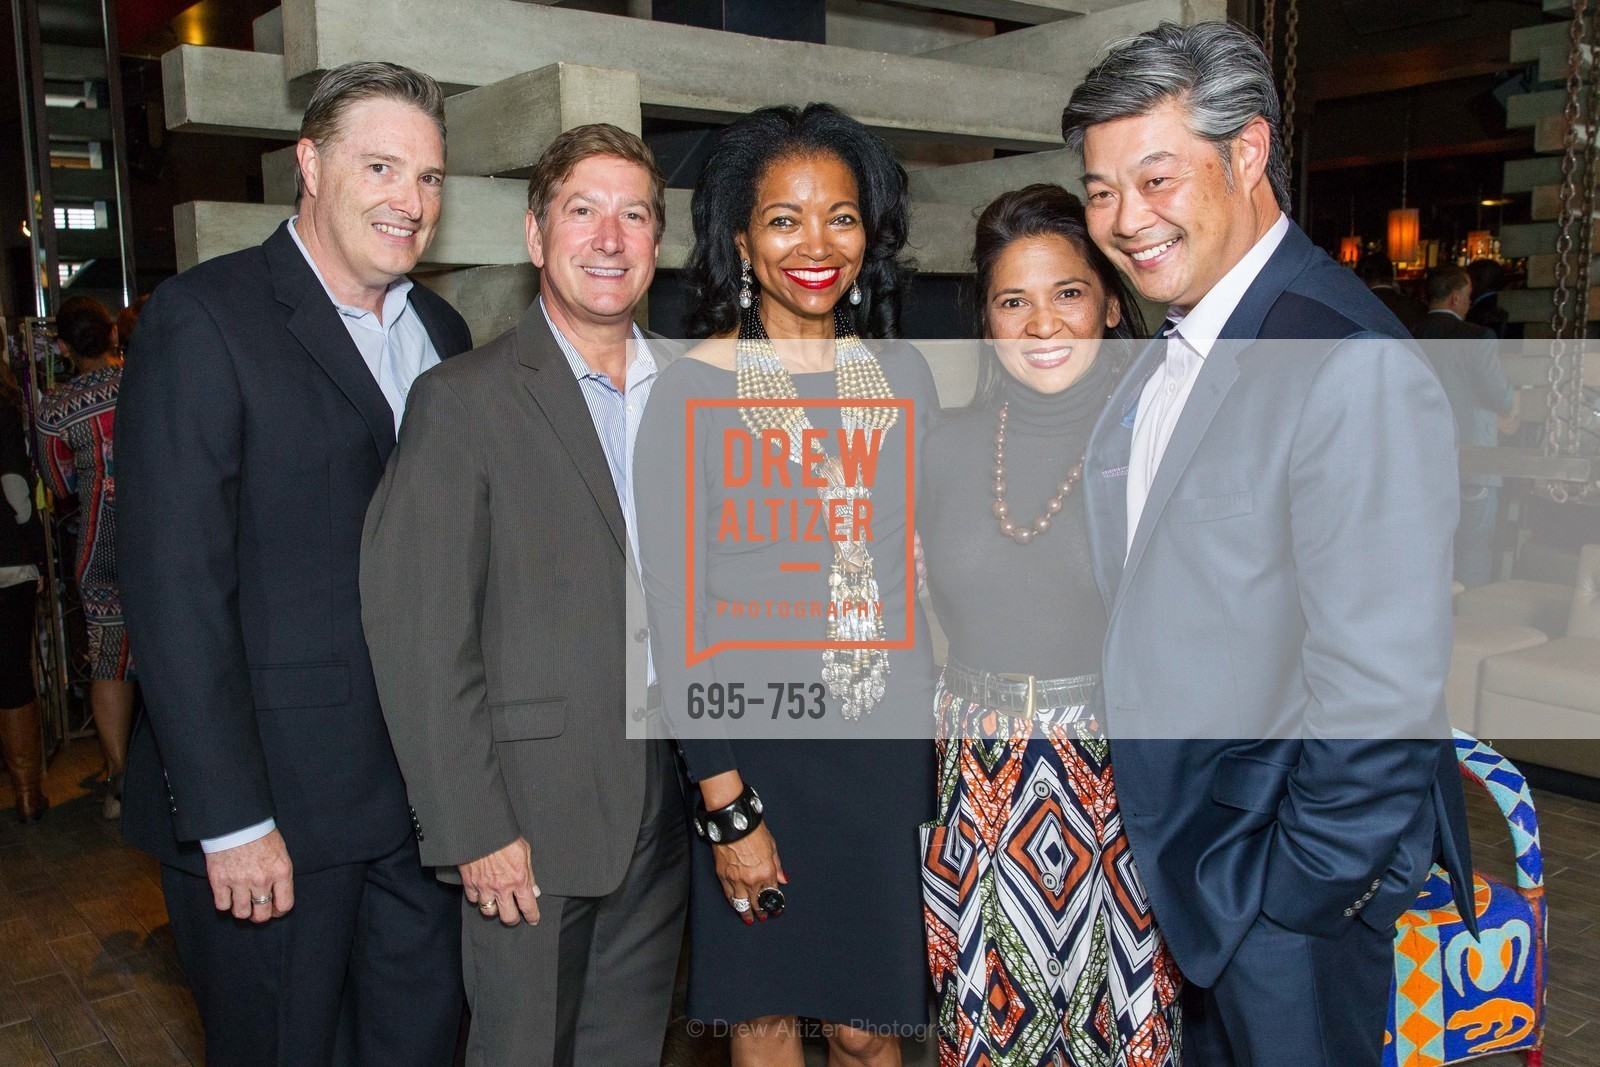 David Jones, Joe D'Alessandro, Denise Bradley Tyson, Darlene Fong, Rodney Fong, INSPIRED LUXE Launch Party Hosted by Denise Bradley Tyson, US, Matrix Fillmore, May 28th, 2015,Drew Altizer, Drew Altizer Photography, full-service agency, private events, San Francisco photographer, photographer california